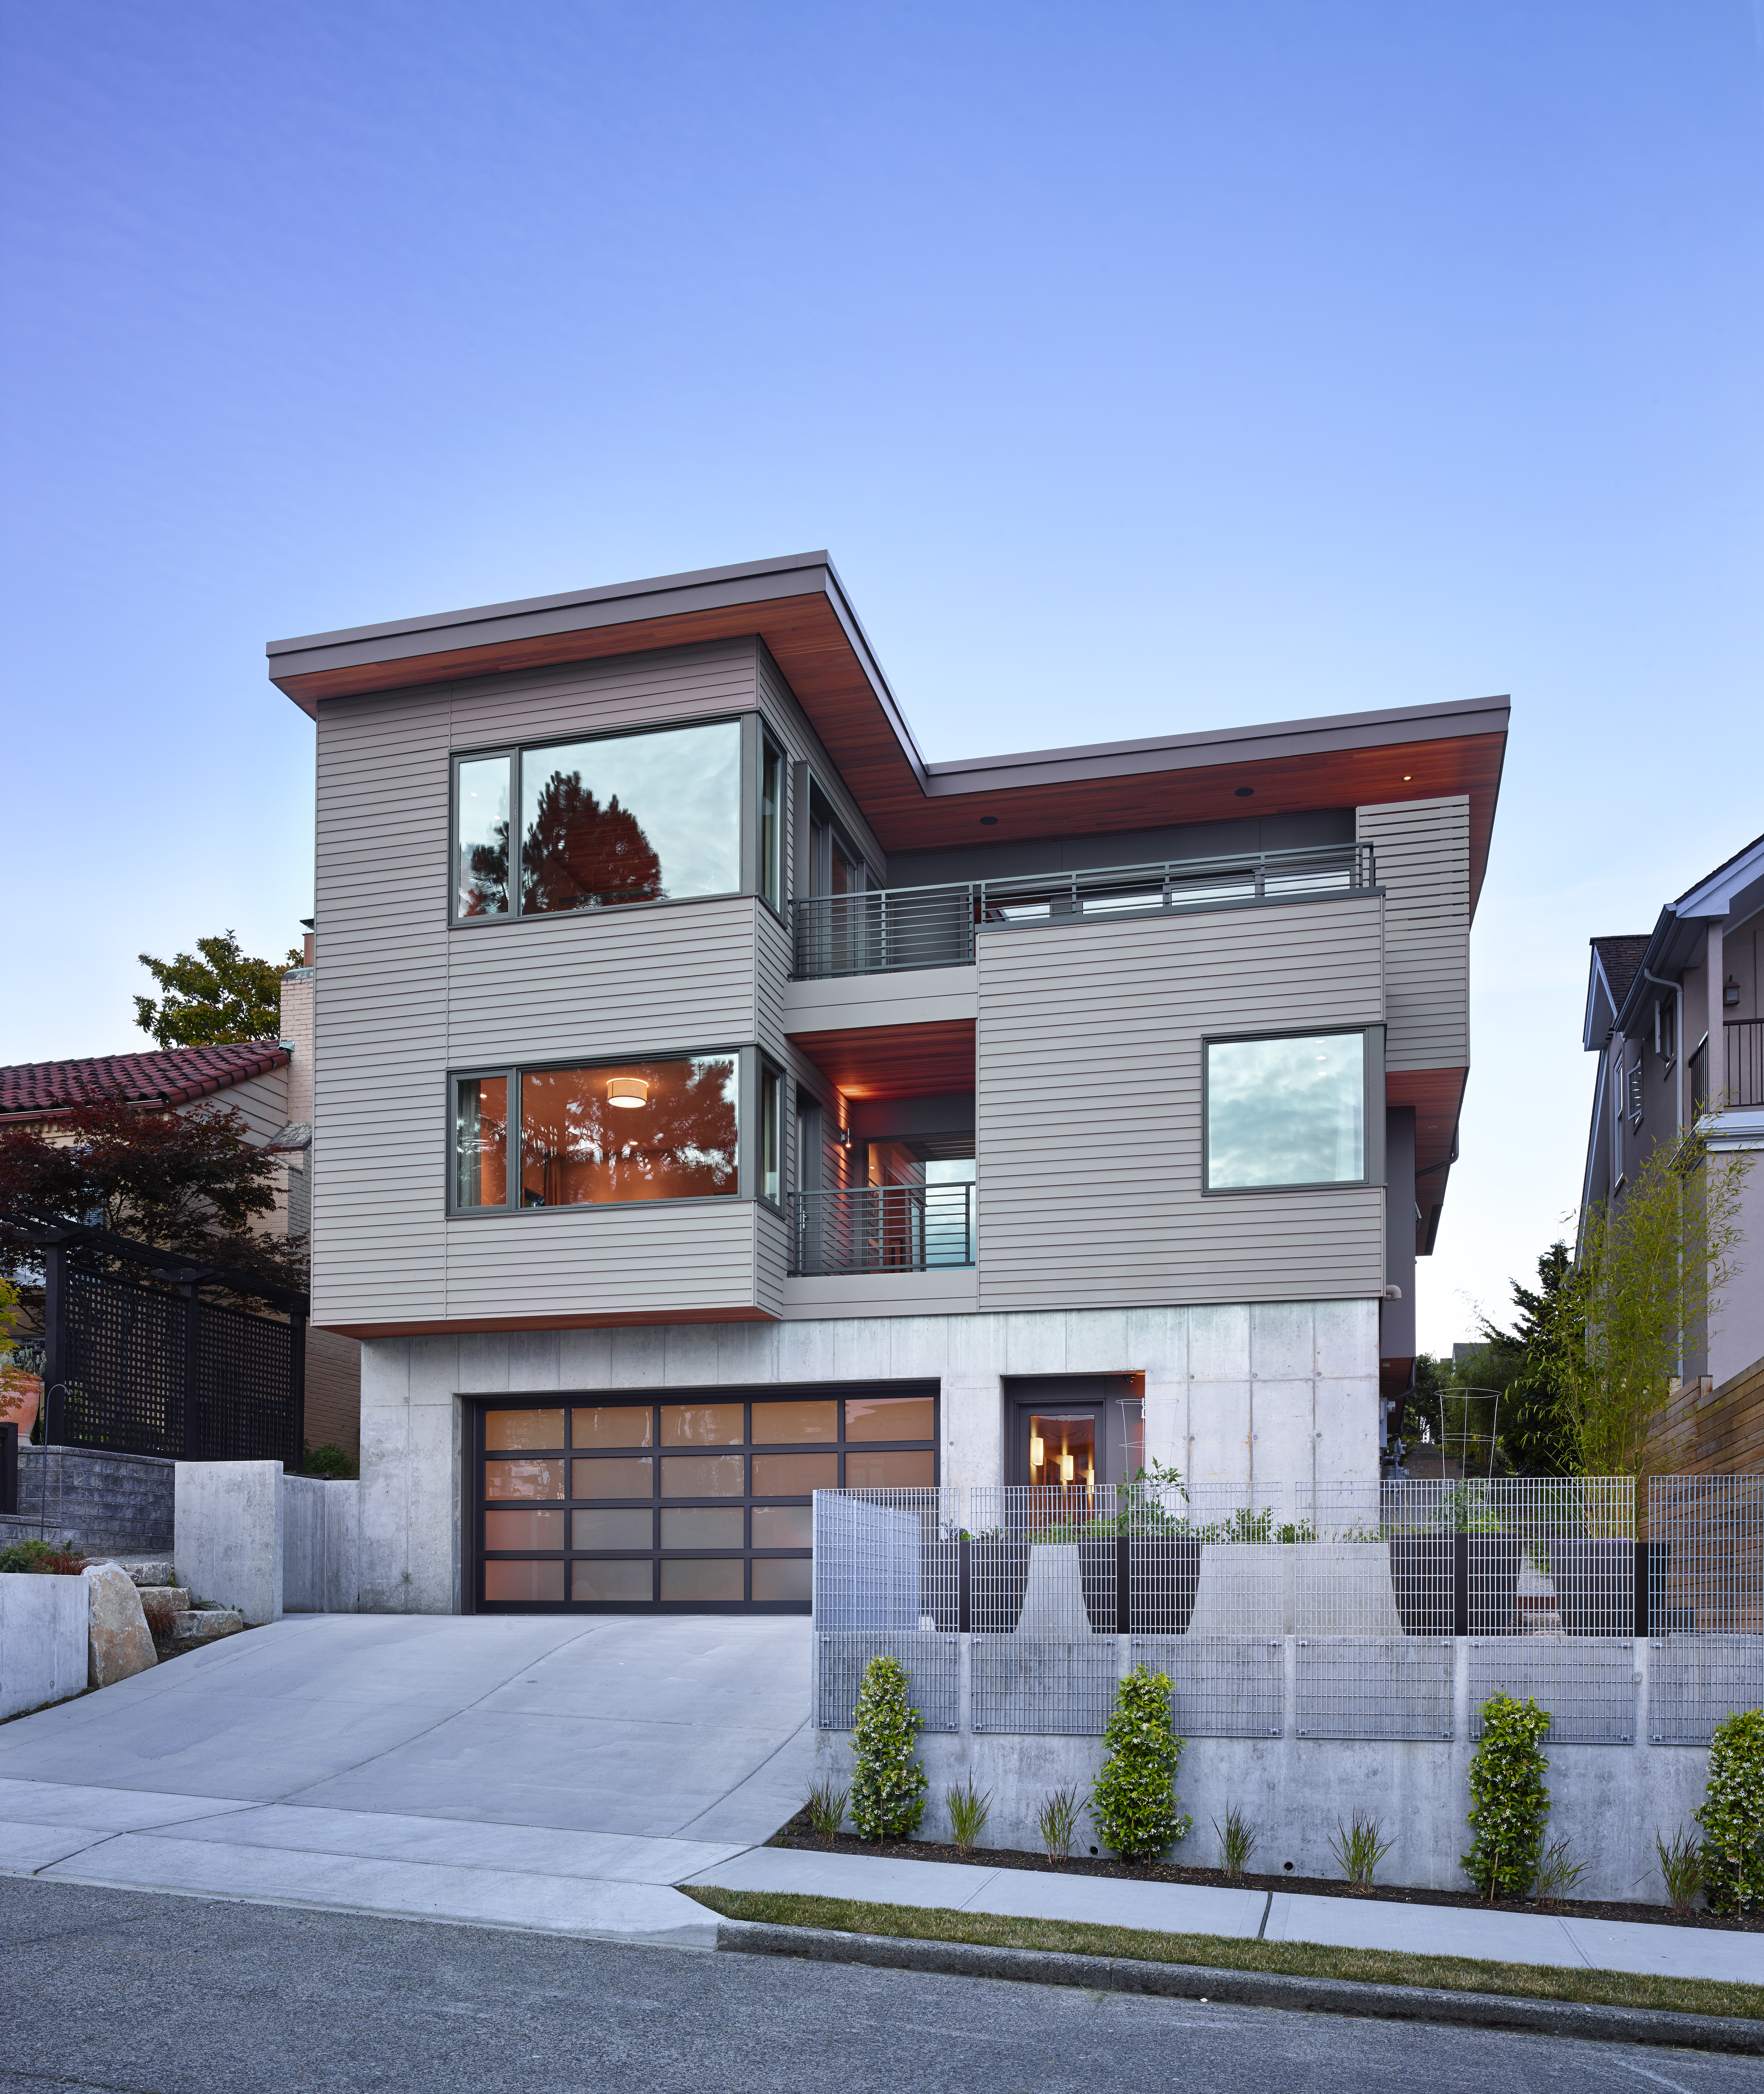 Gallery House, Seattle